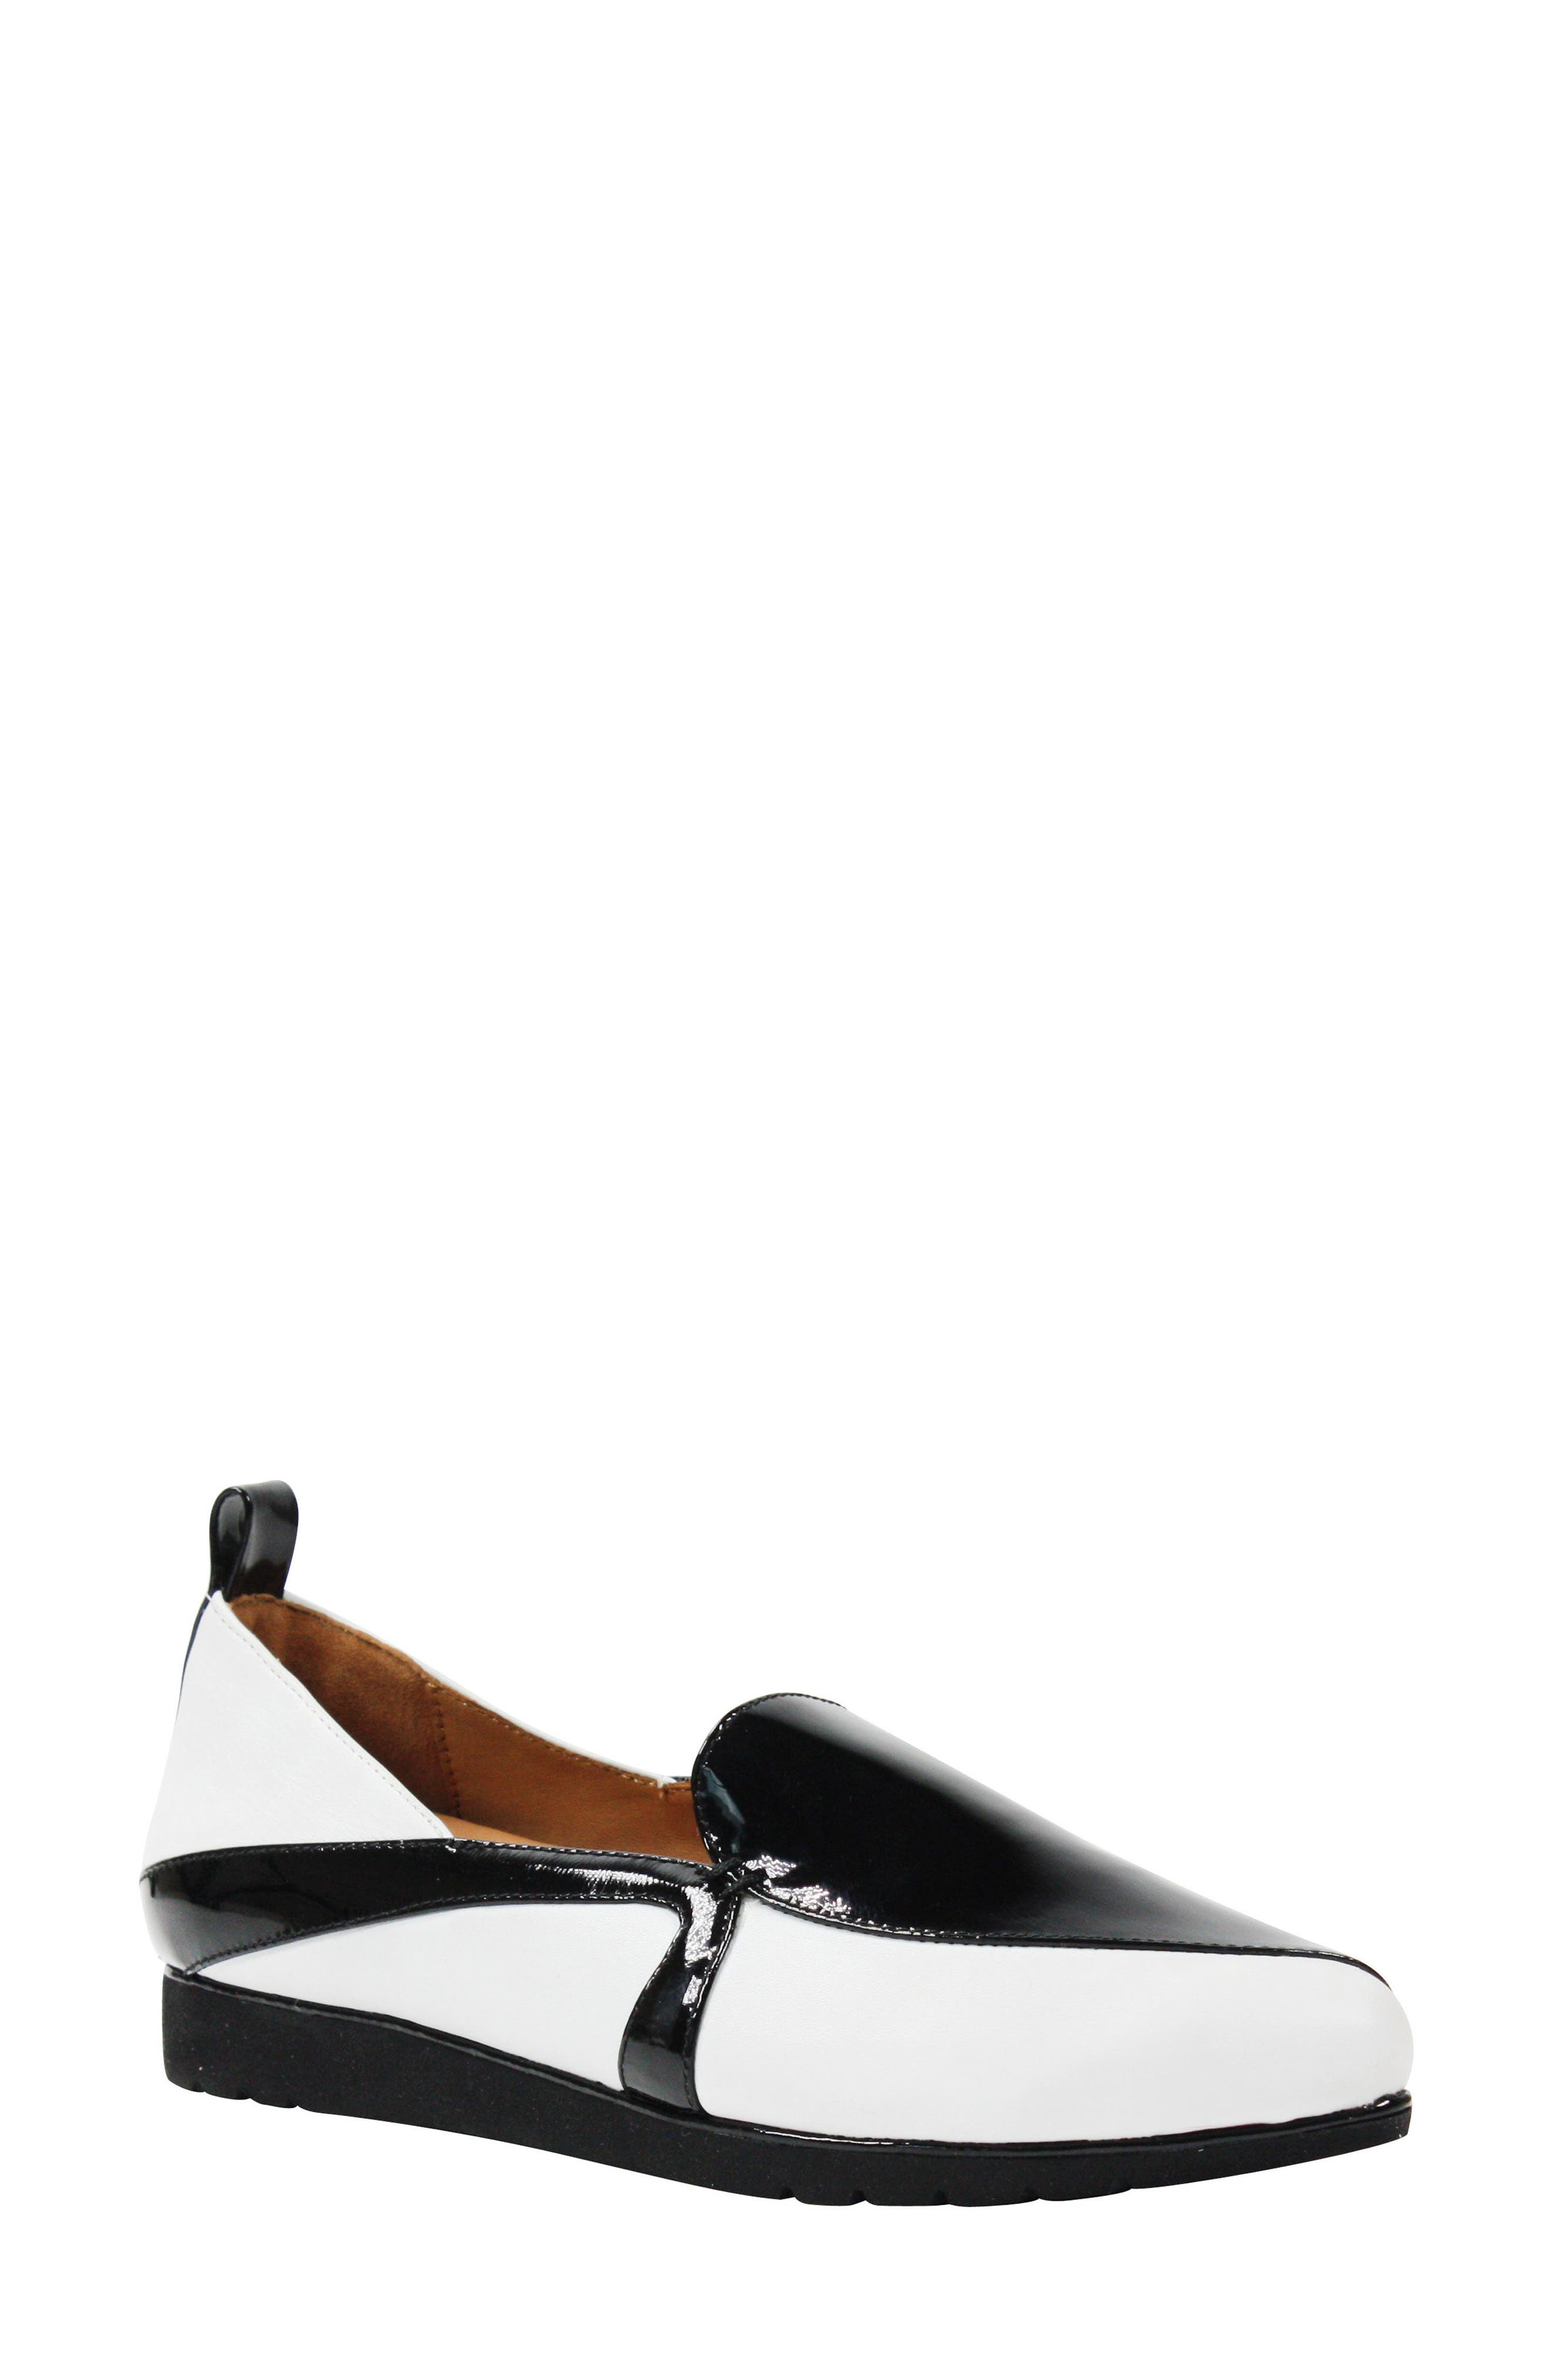 Marjolaina Loafer,                         Main,                         color, Black/ White Patent Leather